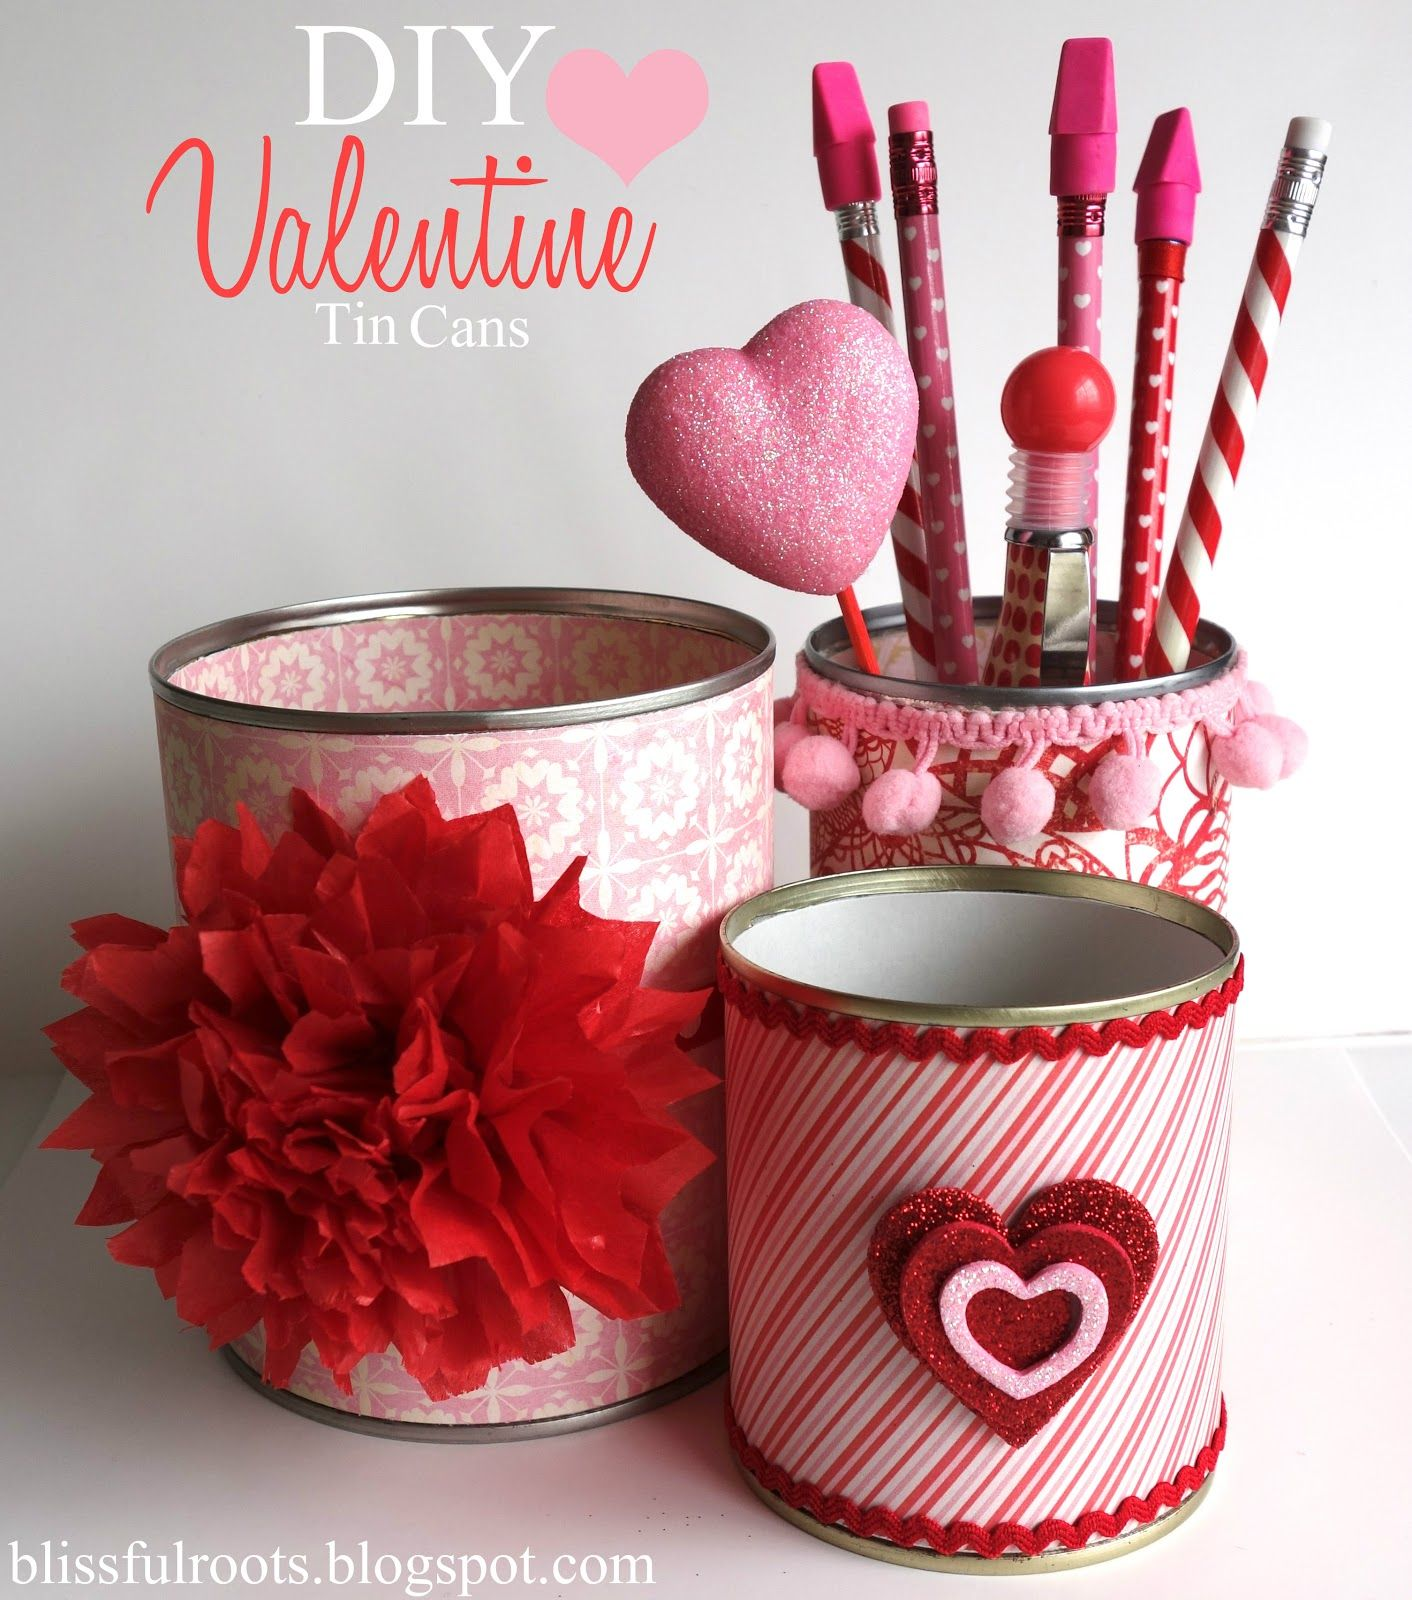 Blissful roots diy valentine tin cans could make these in regular recycle tin cans with paper ribbon or tissue flowers for a reusable valentine project blissful roots diy valentine tin cans solutioingenieria Gallery